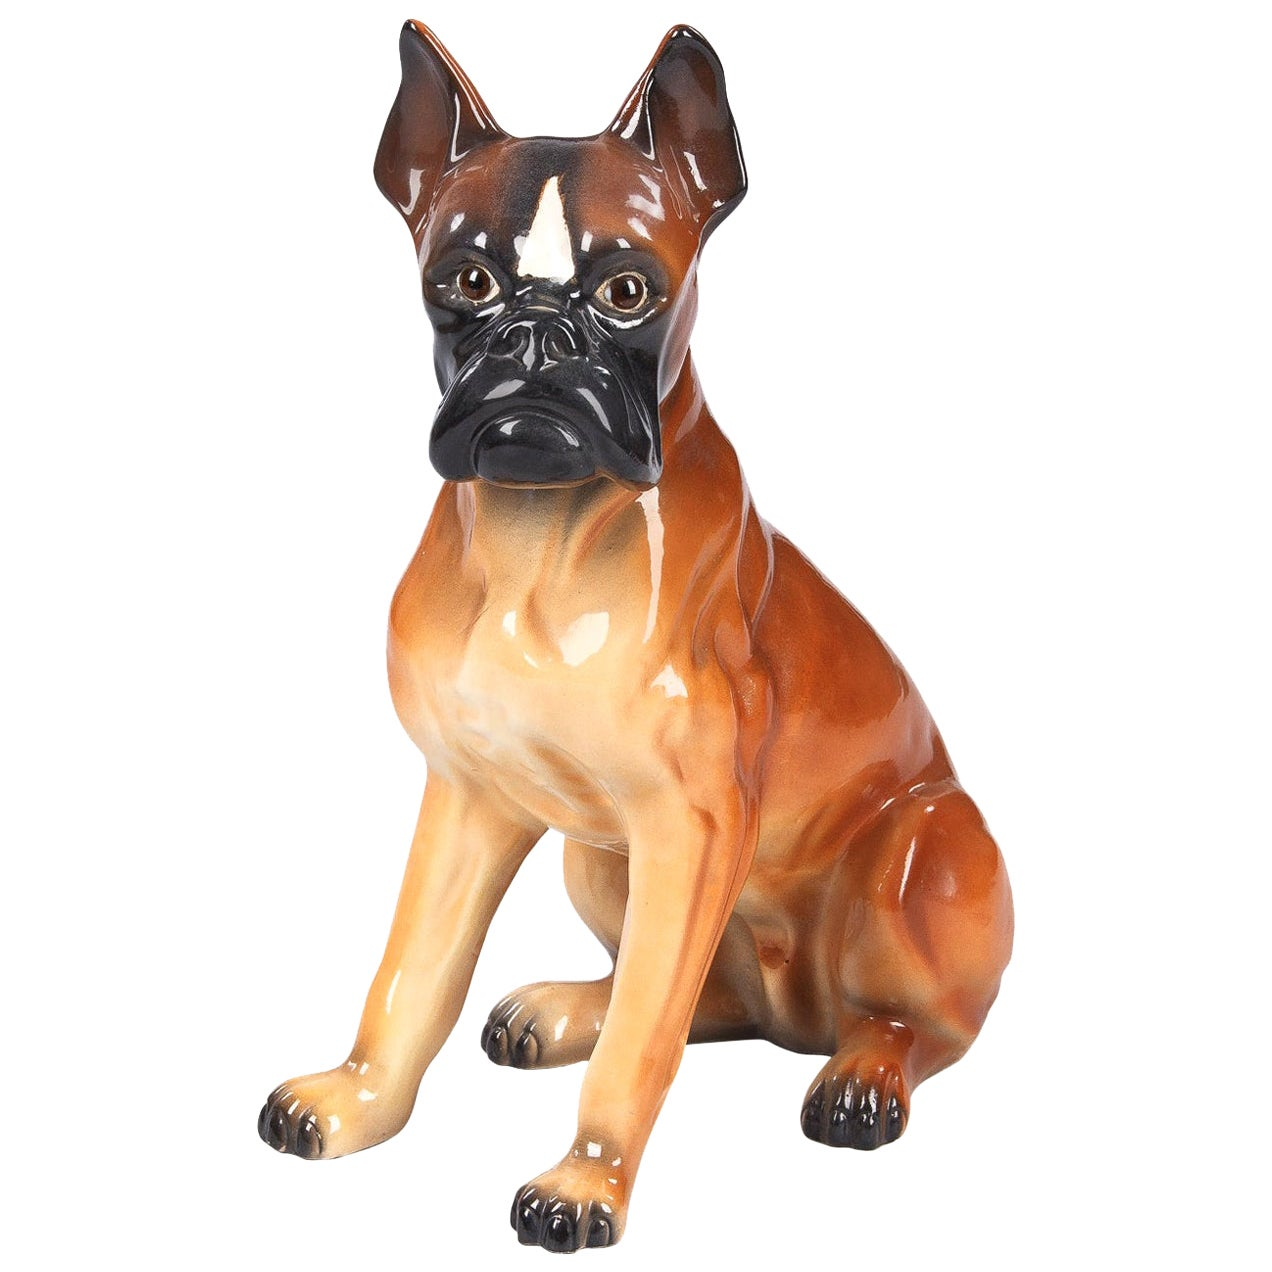 French Ceramic Boxer Dog Sculpture, 1950s